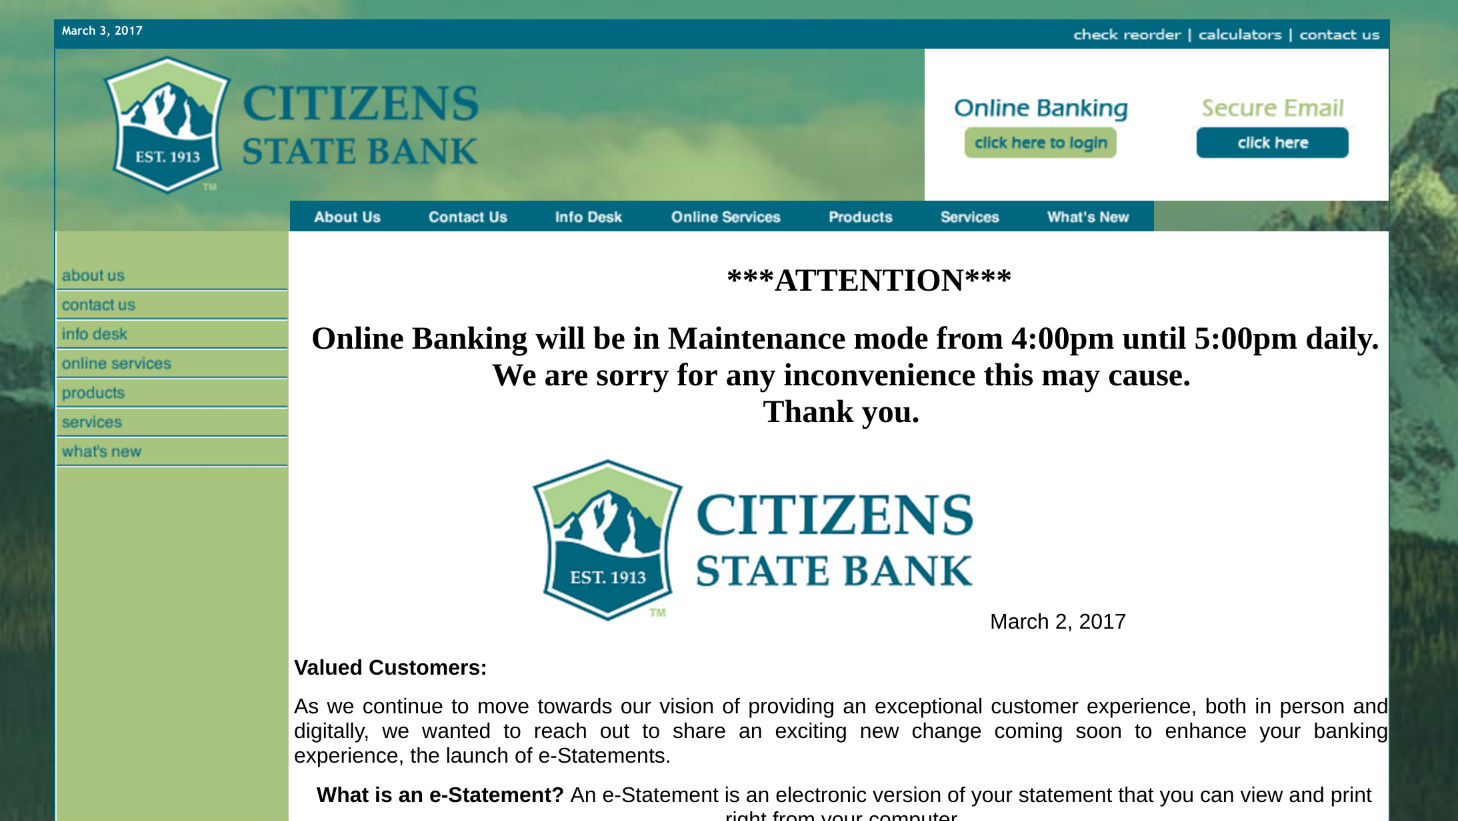 Citizens State Bank Ridgway